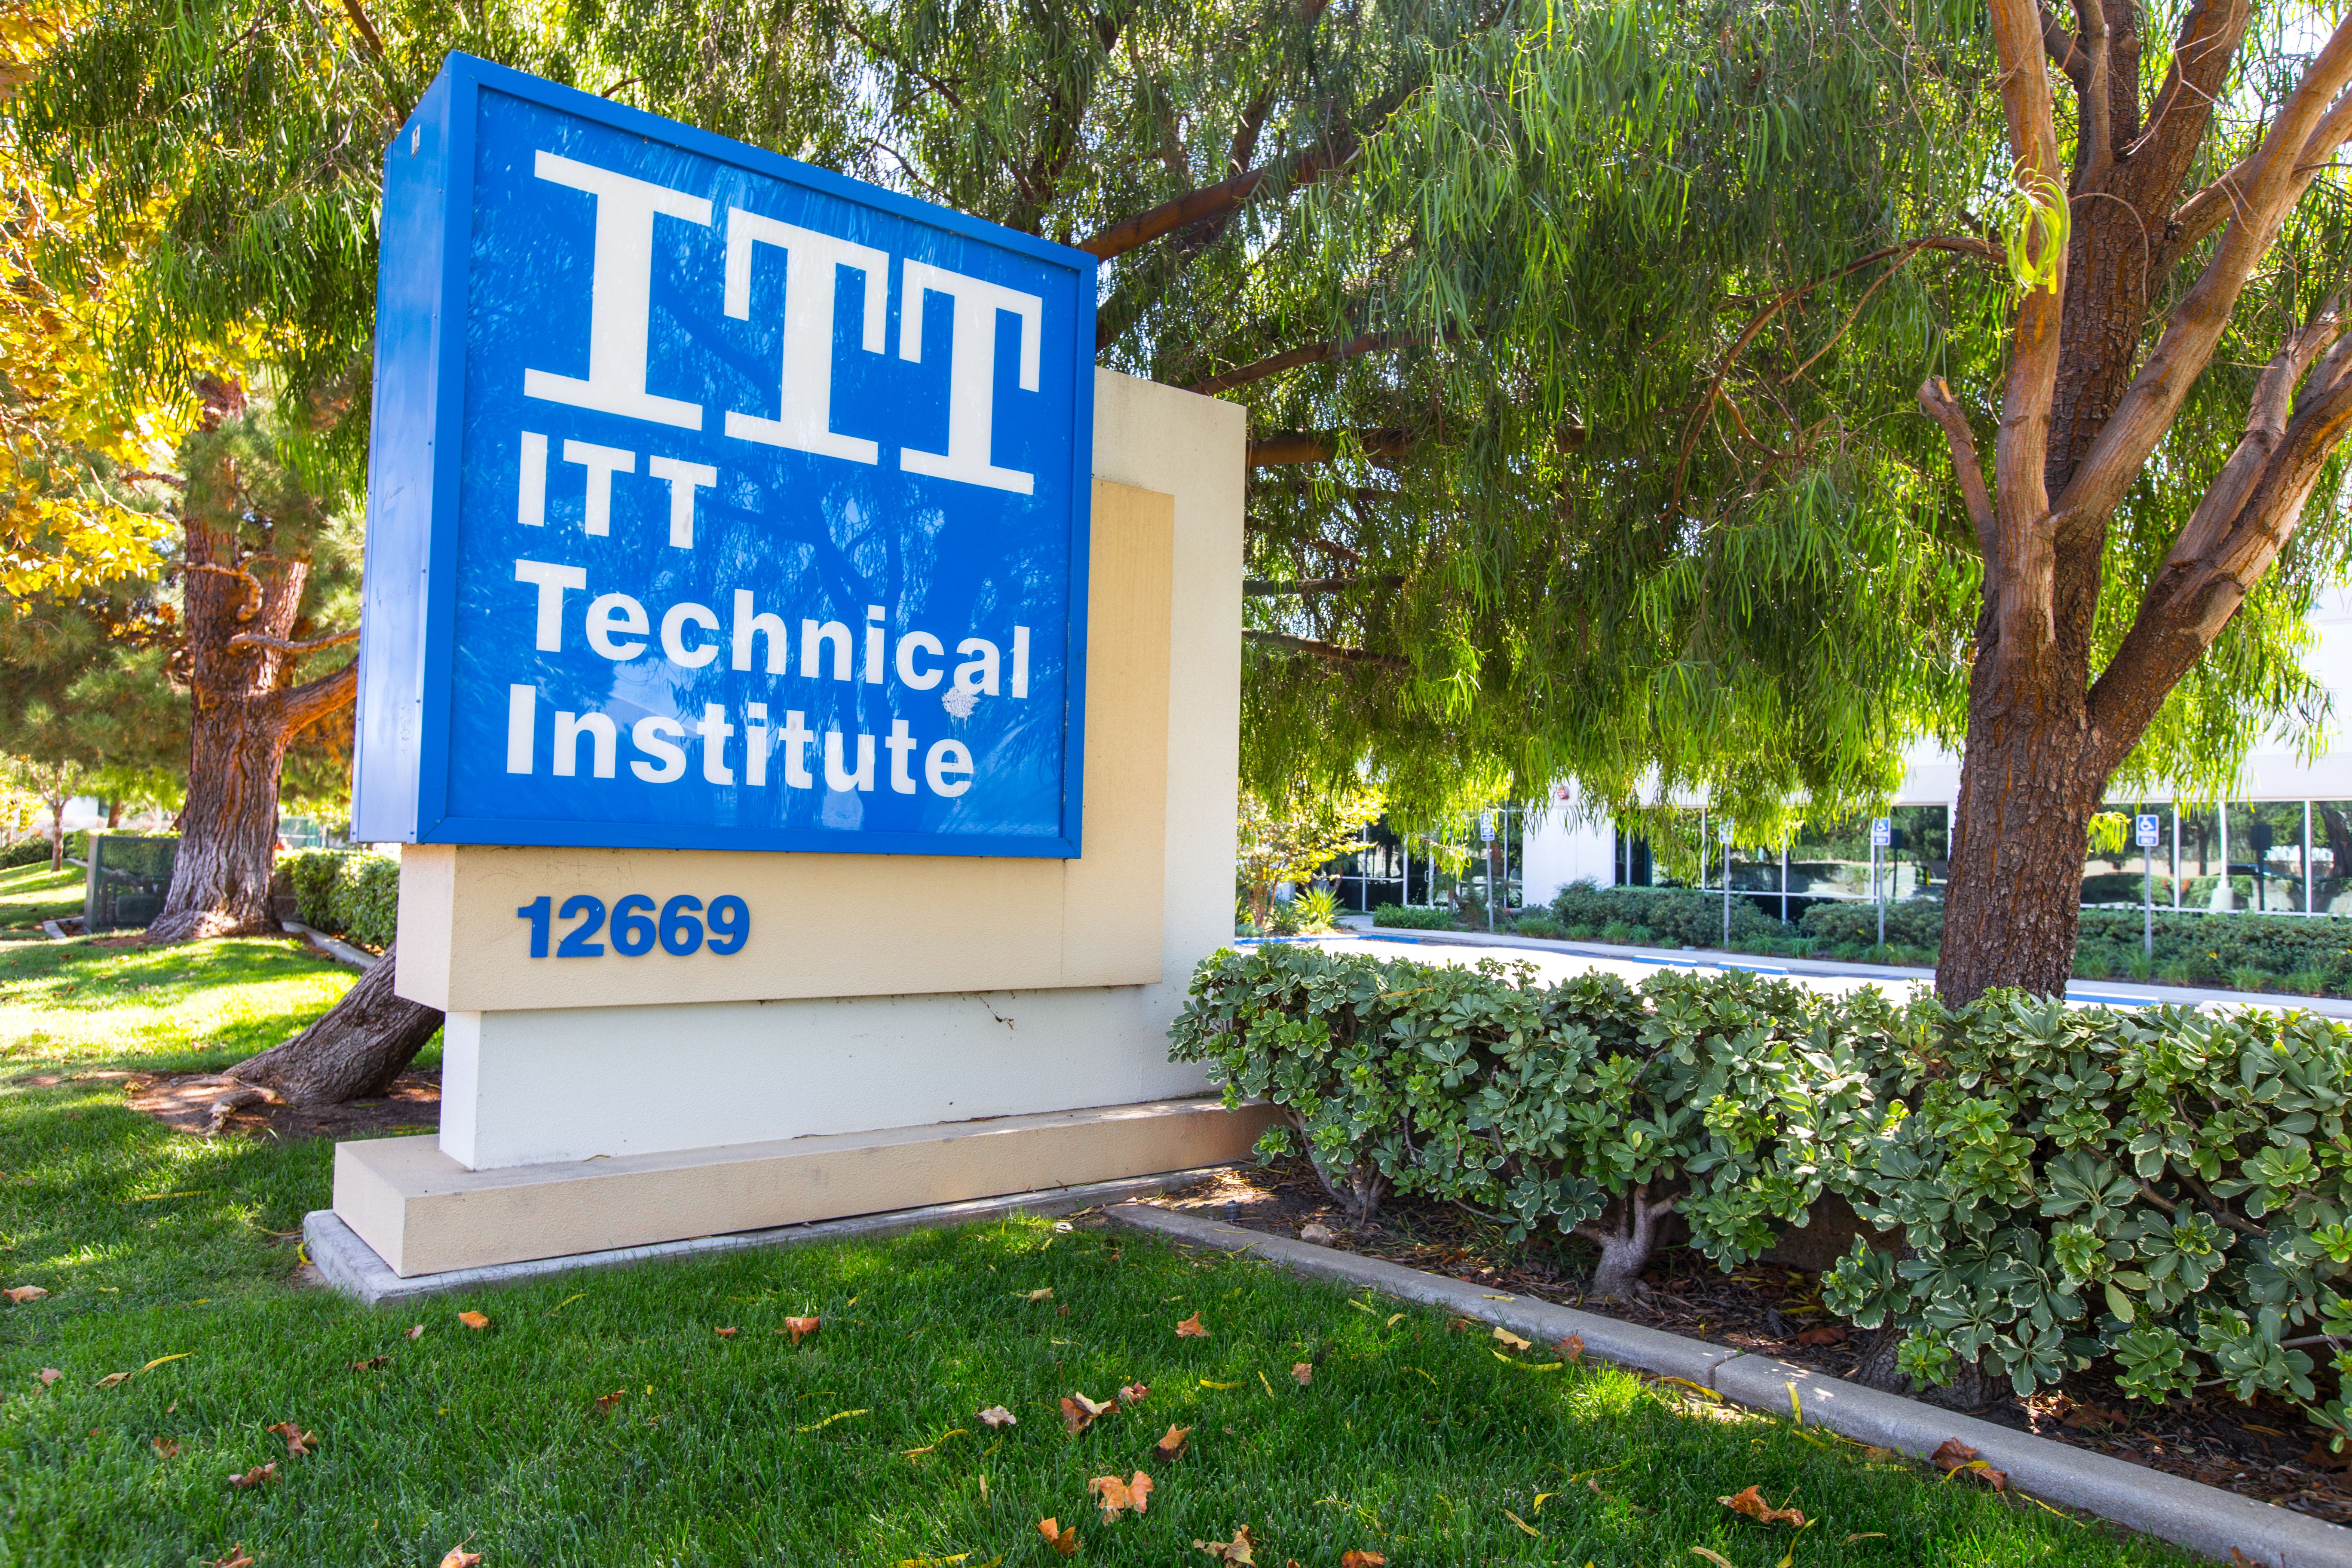 Sylmar CA - September 18, 2016:  ITT Educational Services Headquarter in Indiana. ITT Technical Institute has decided to close all its campuses in the wake of devastating federal sanctions. The school shows its doors closed days after it file for bankruptcy for misleading students into high amounts of debt.